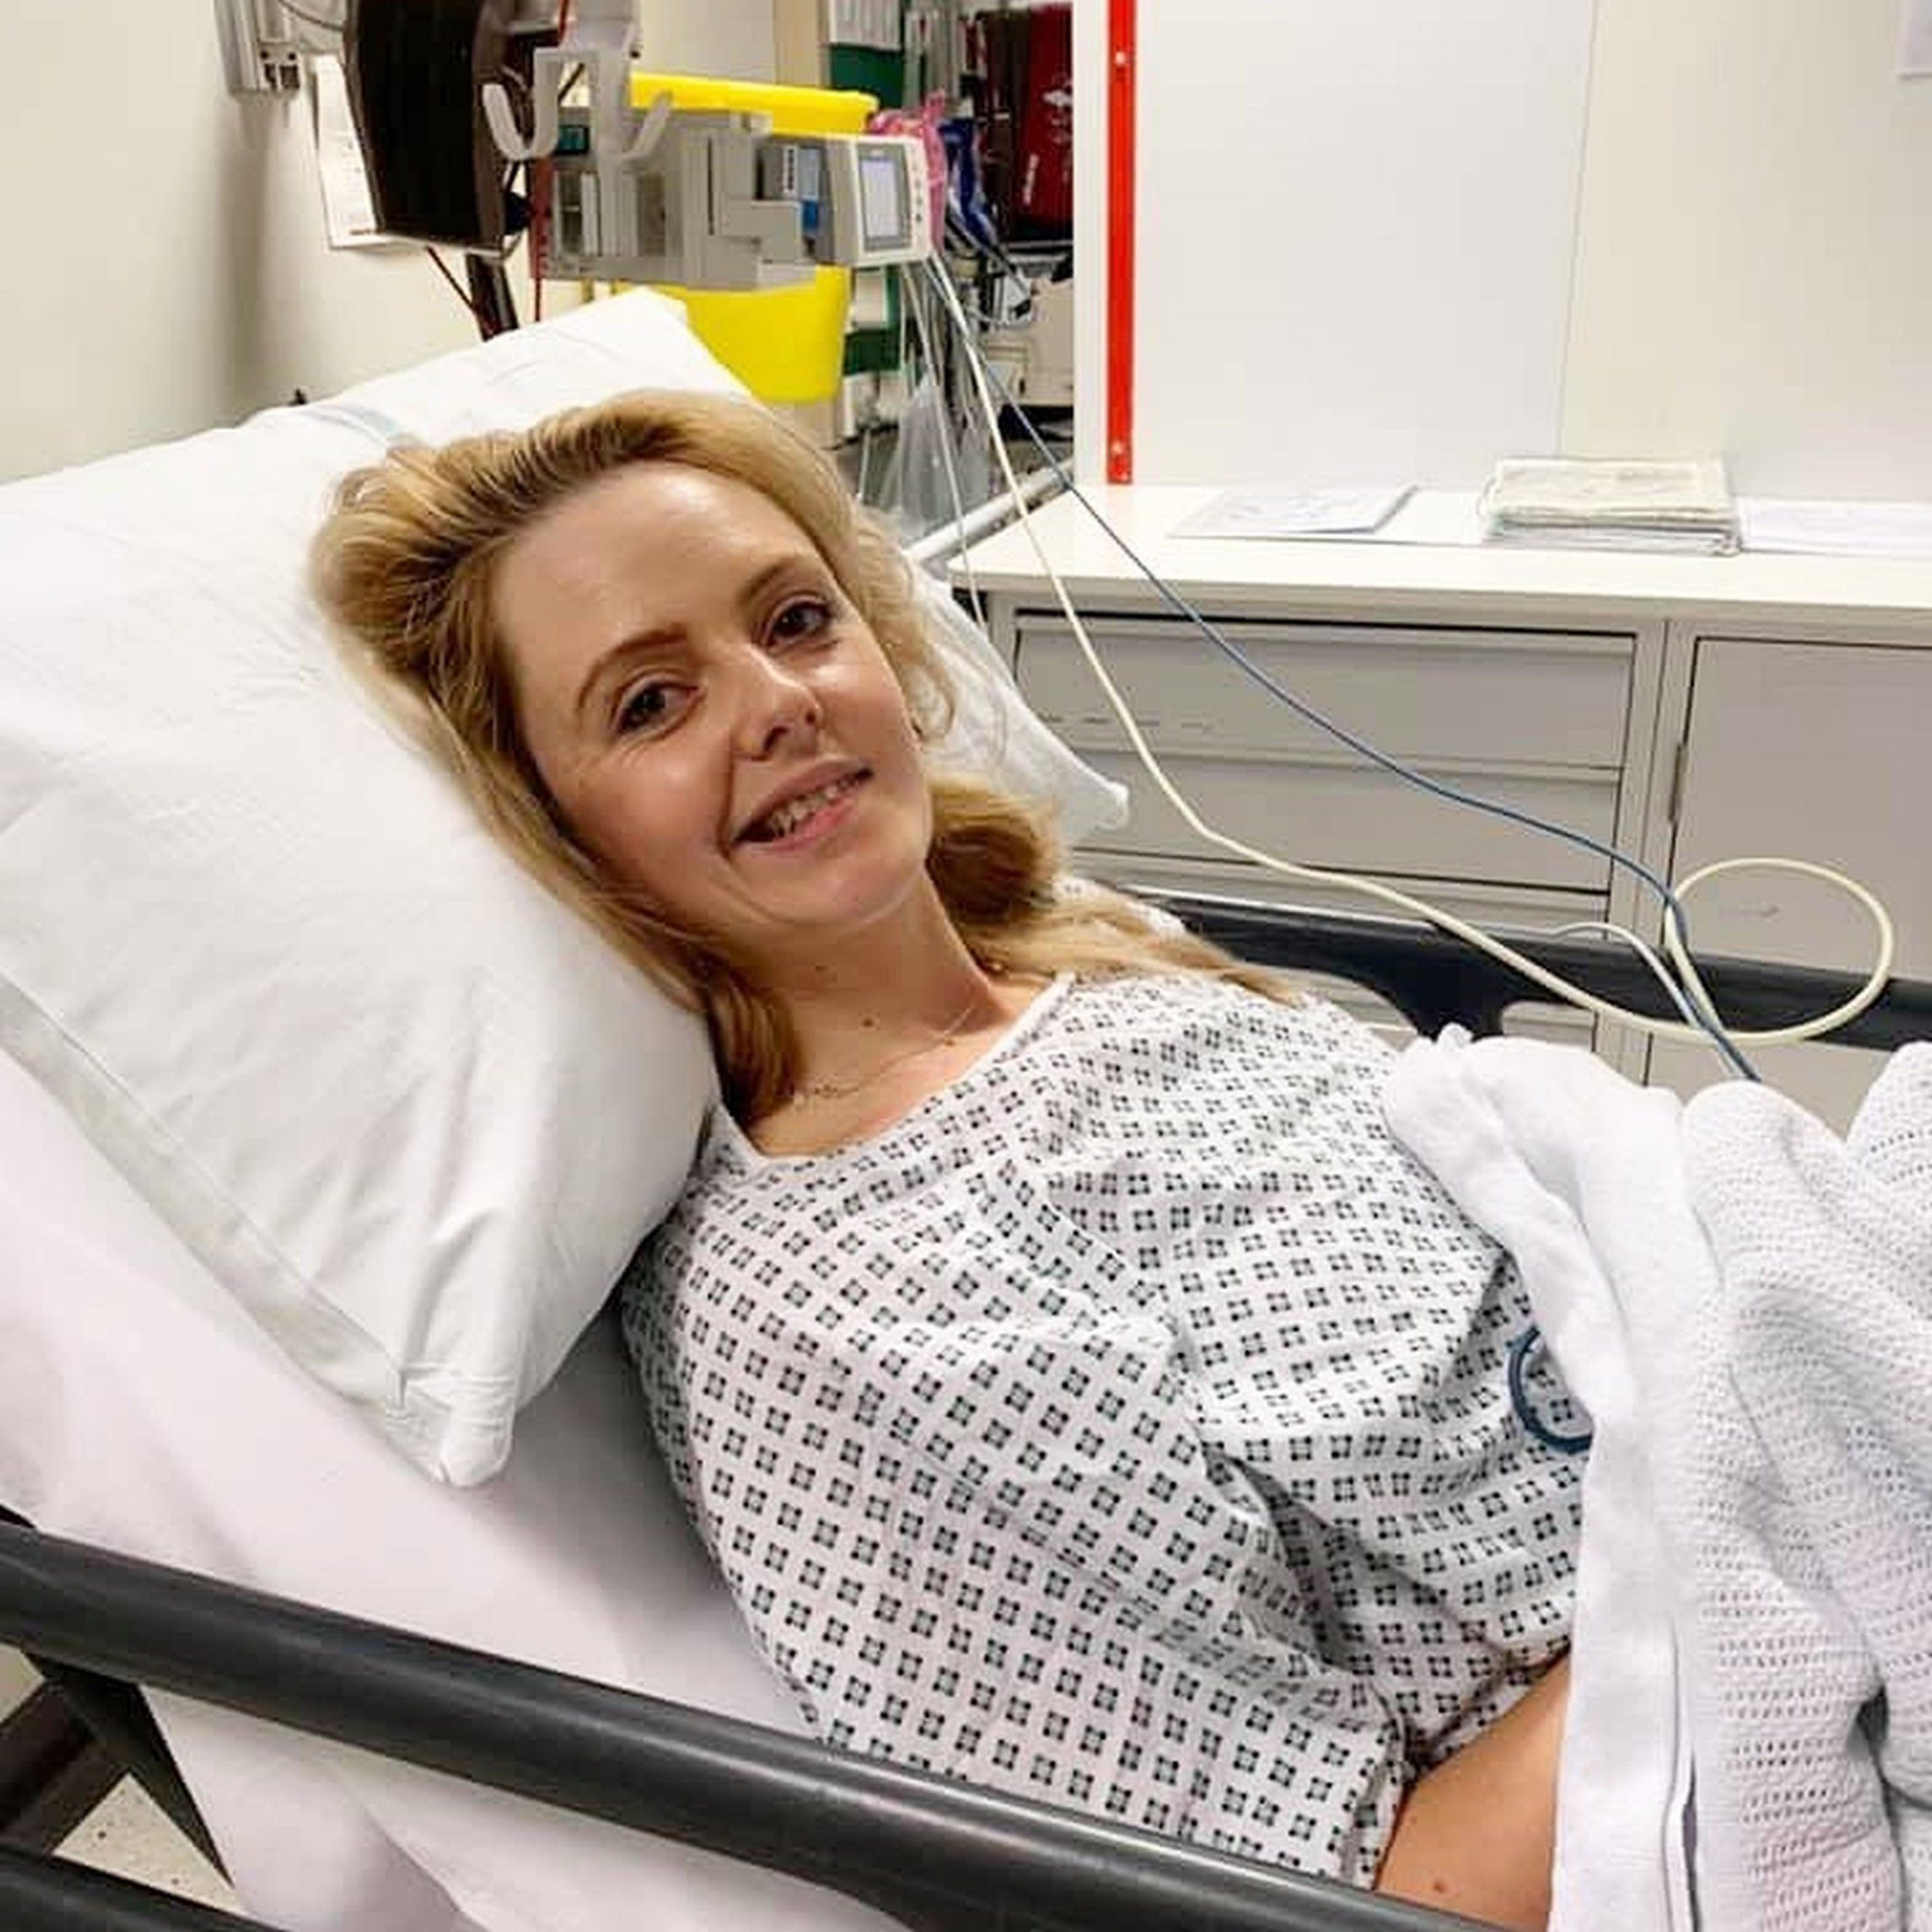 PIC FROM Kennedy News and Media (PICTURED: ISSY FOX IN HOSPITAL AFTER SHE HAD A STROKE CAUSED BY THE PILL) A young mum of just 28 has been left partially paralysed after a sudden stroke due to taking the PILL. Issy Fox had been taking the pill for three months when she suffered a stroke in front of her terrified mother and baby son on February 8. The mum-of-one was rushed to hospital where an MRI scan diagnosed a right frontal lobe stroke, leaving her left hand, arm and part of her face paralysed. SEE KENNEDY NEWS COPY - 0161 697 4266